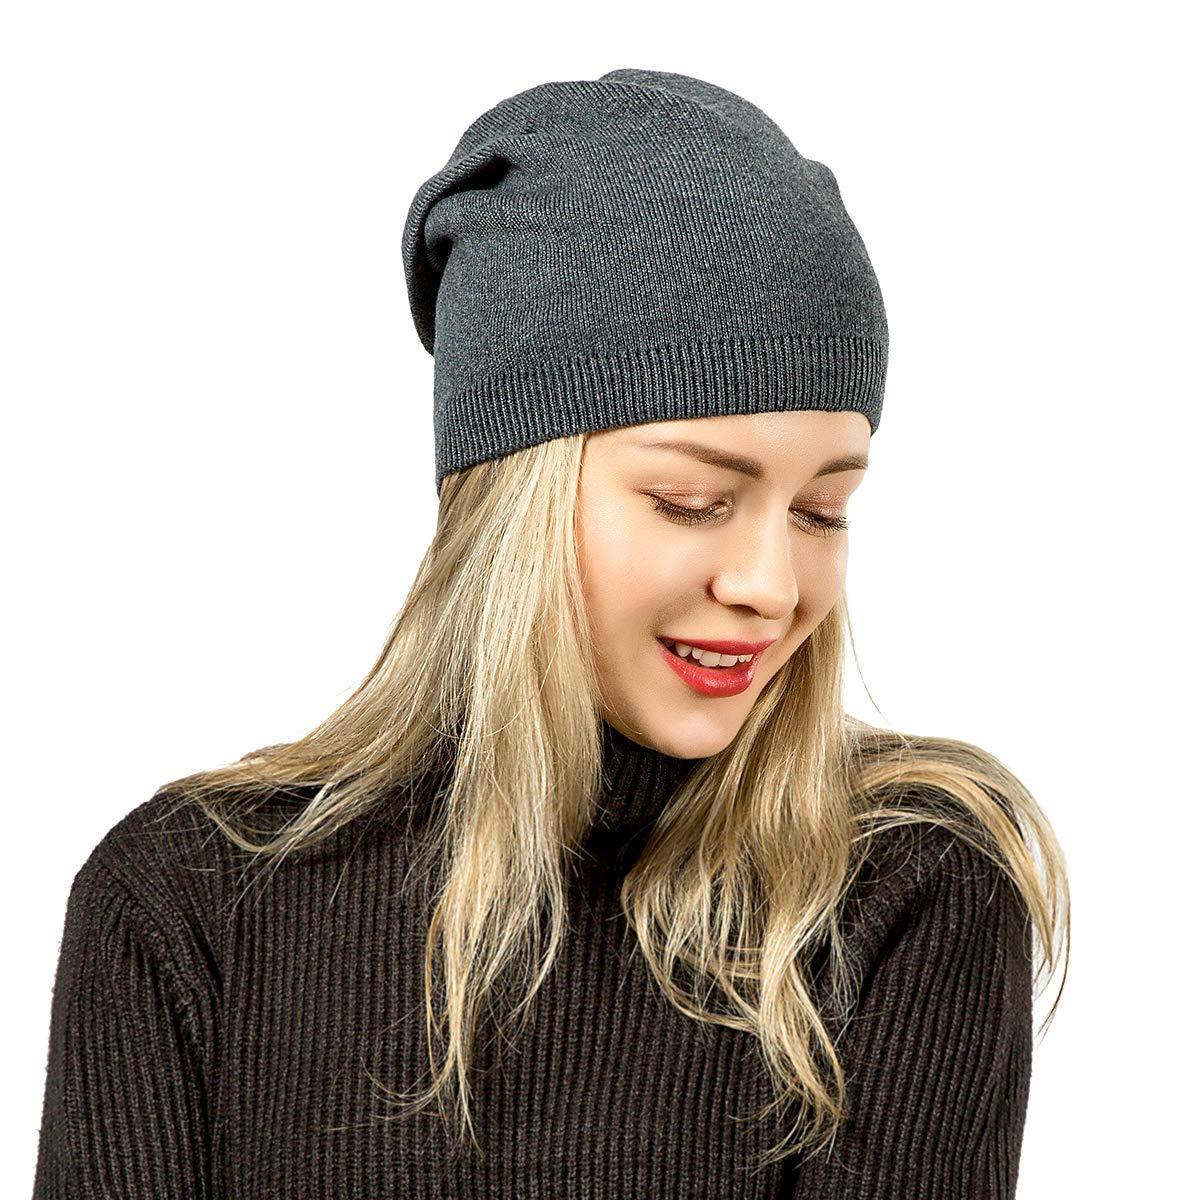 Winter Hats for Women yeabiu Soft Winter Beanies for Women Watch Cap Knit Wool Hat for Winter Fall